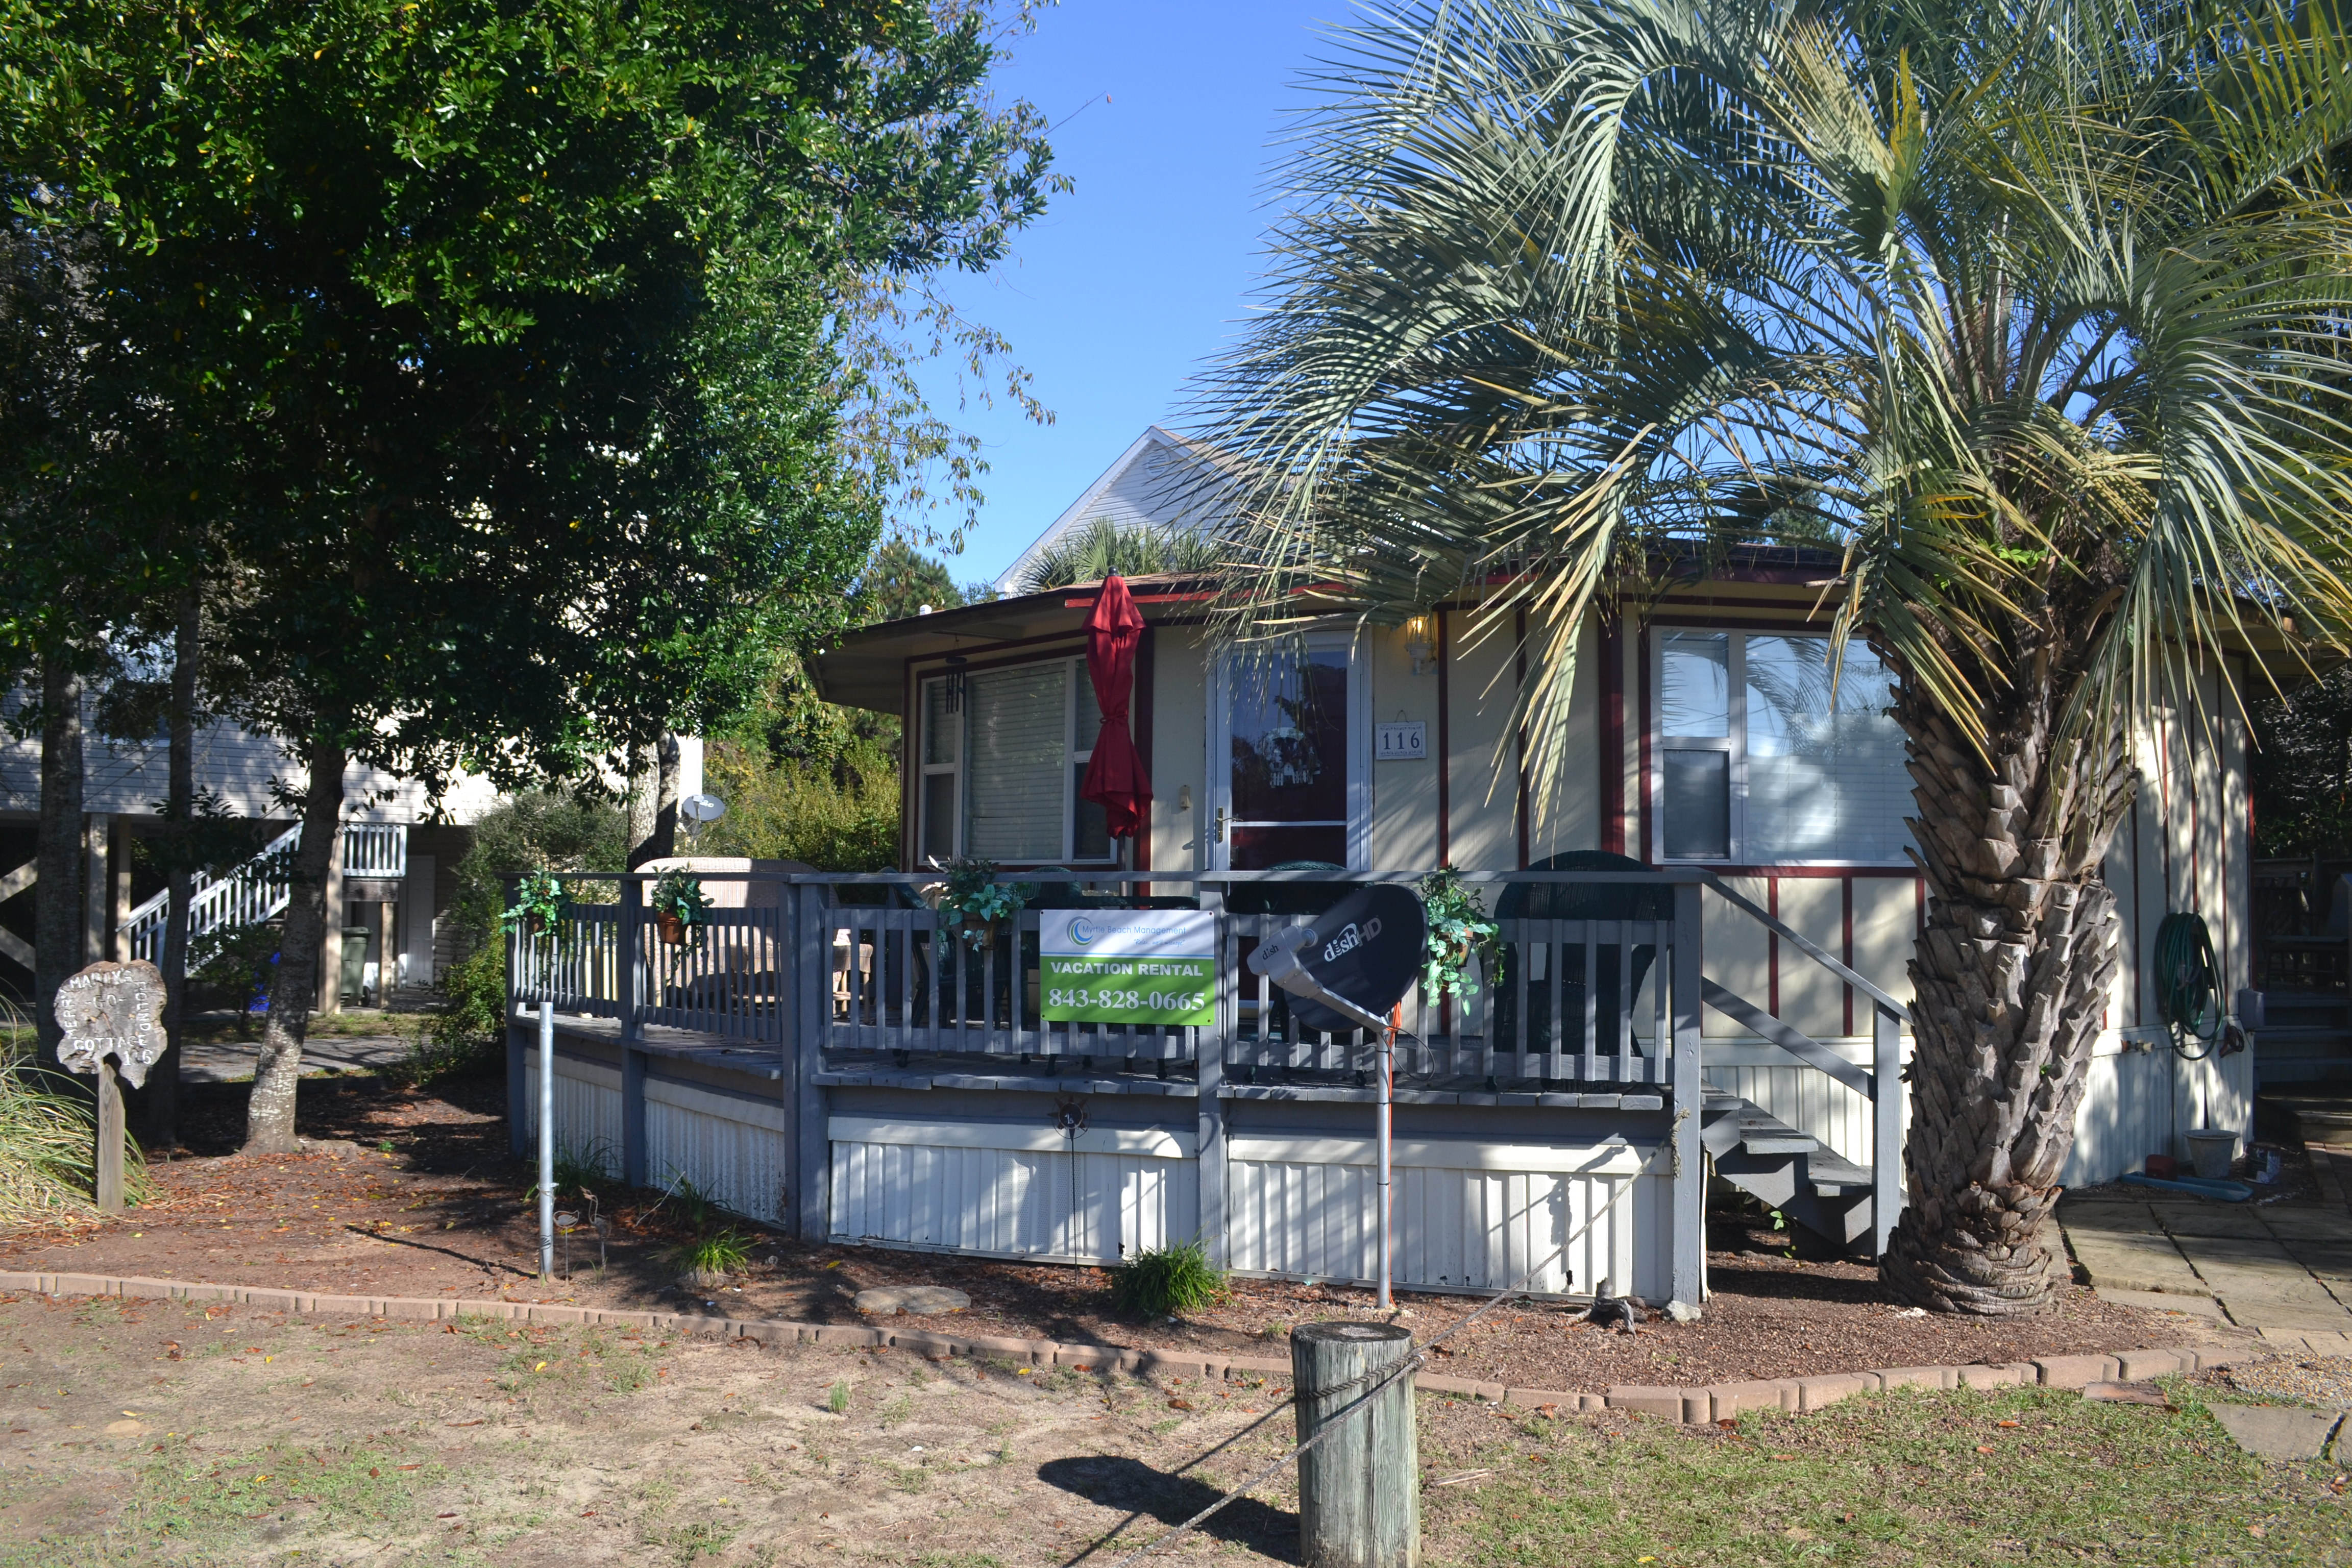 myrtle business beach s cottages listings commercial surfside us hwy retail cottage real location sc